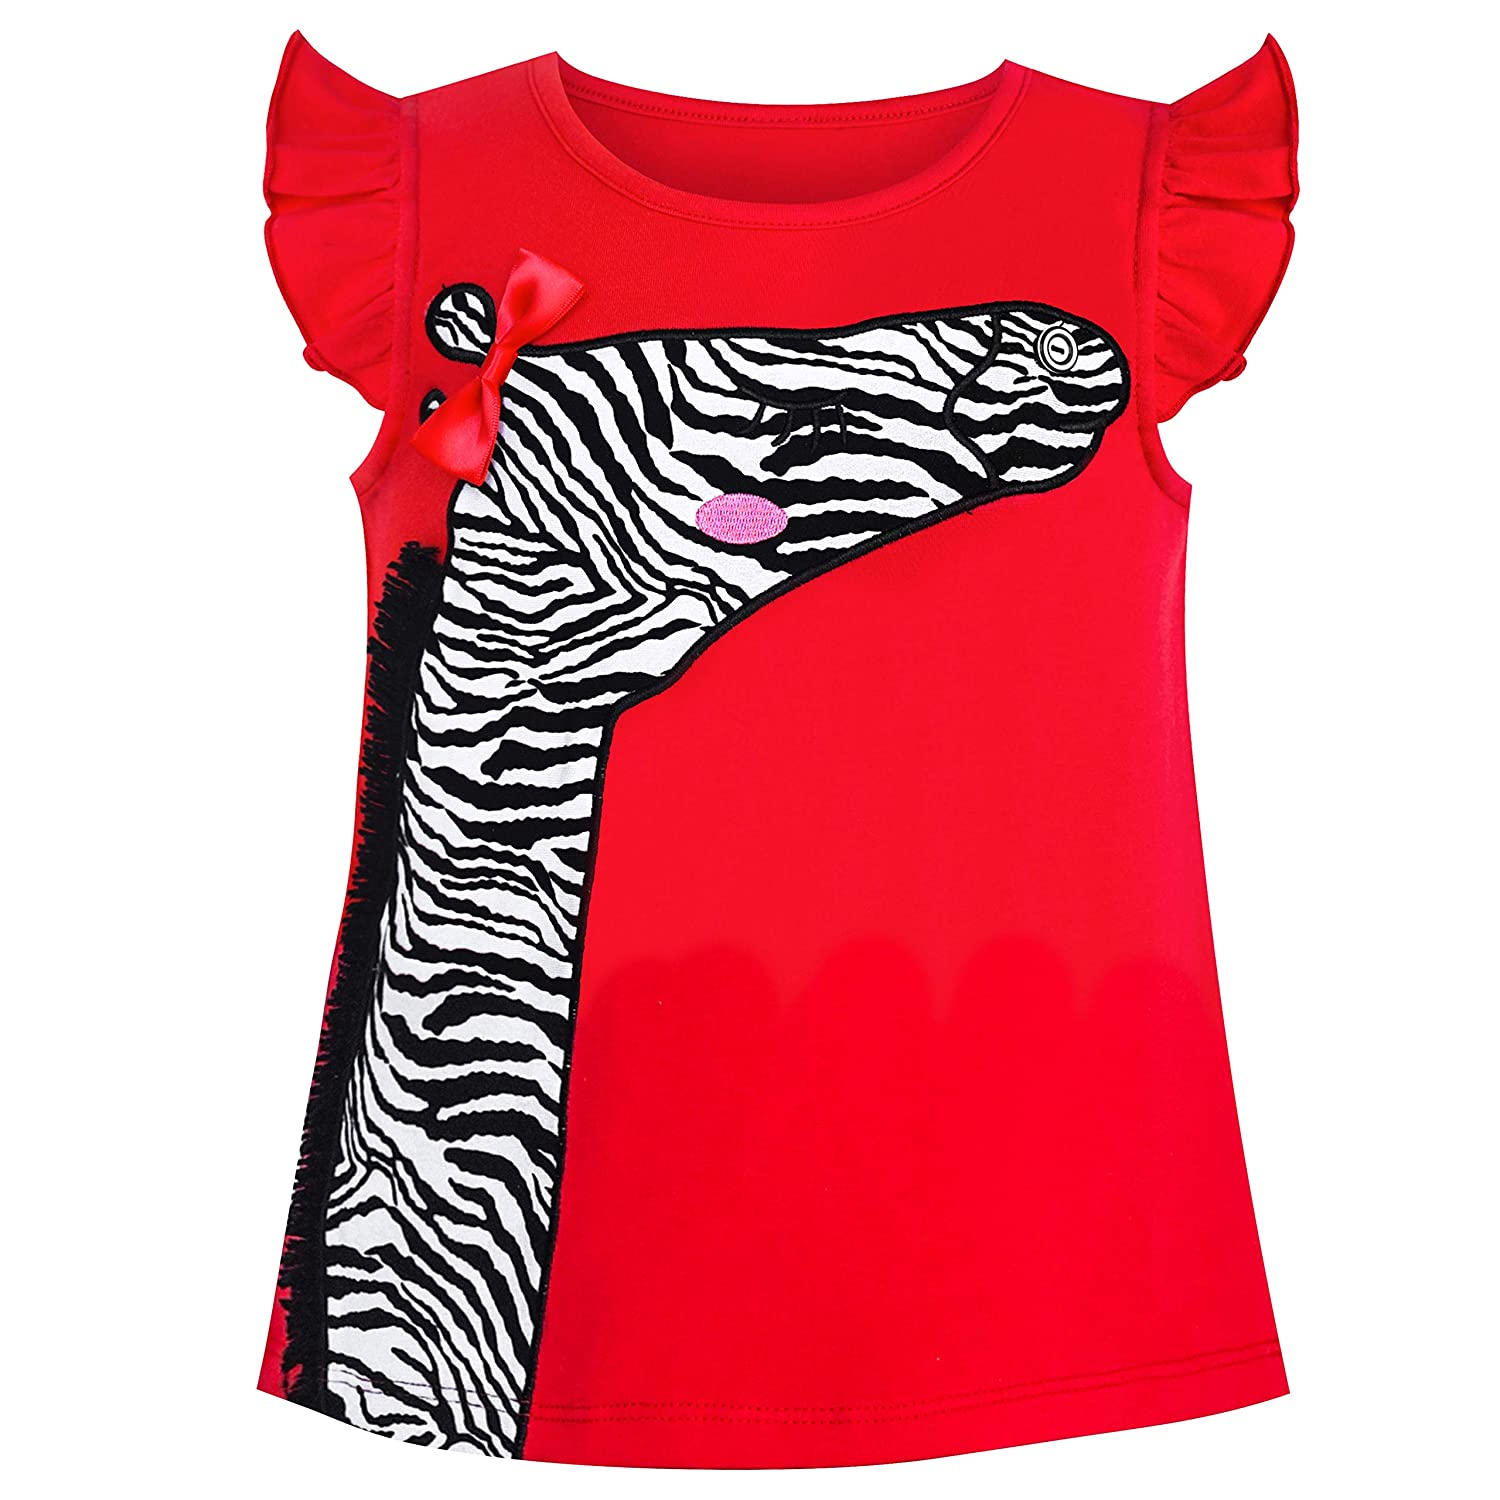 Girls Outfit Set Tee and Pants Zebra Clothing Set Age 2-6 Years